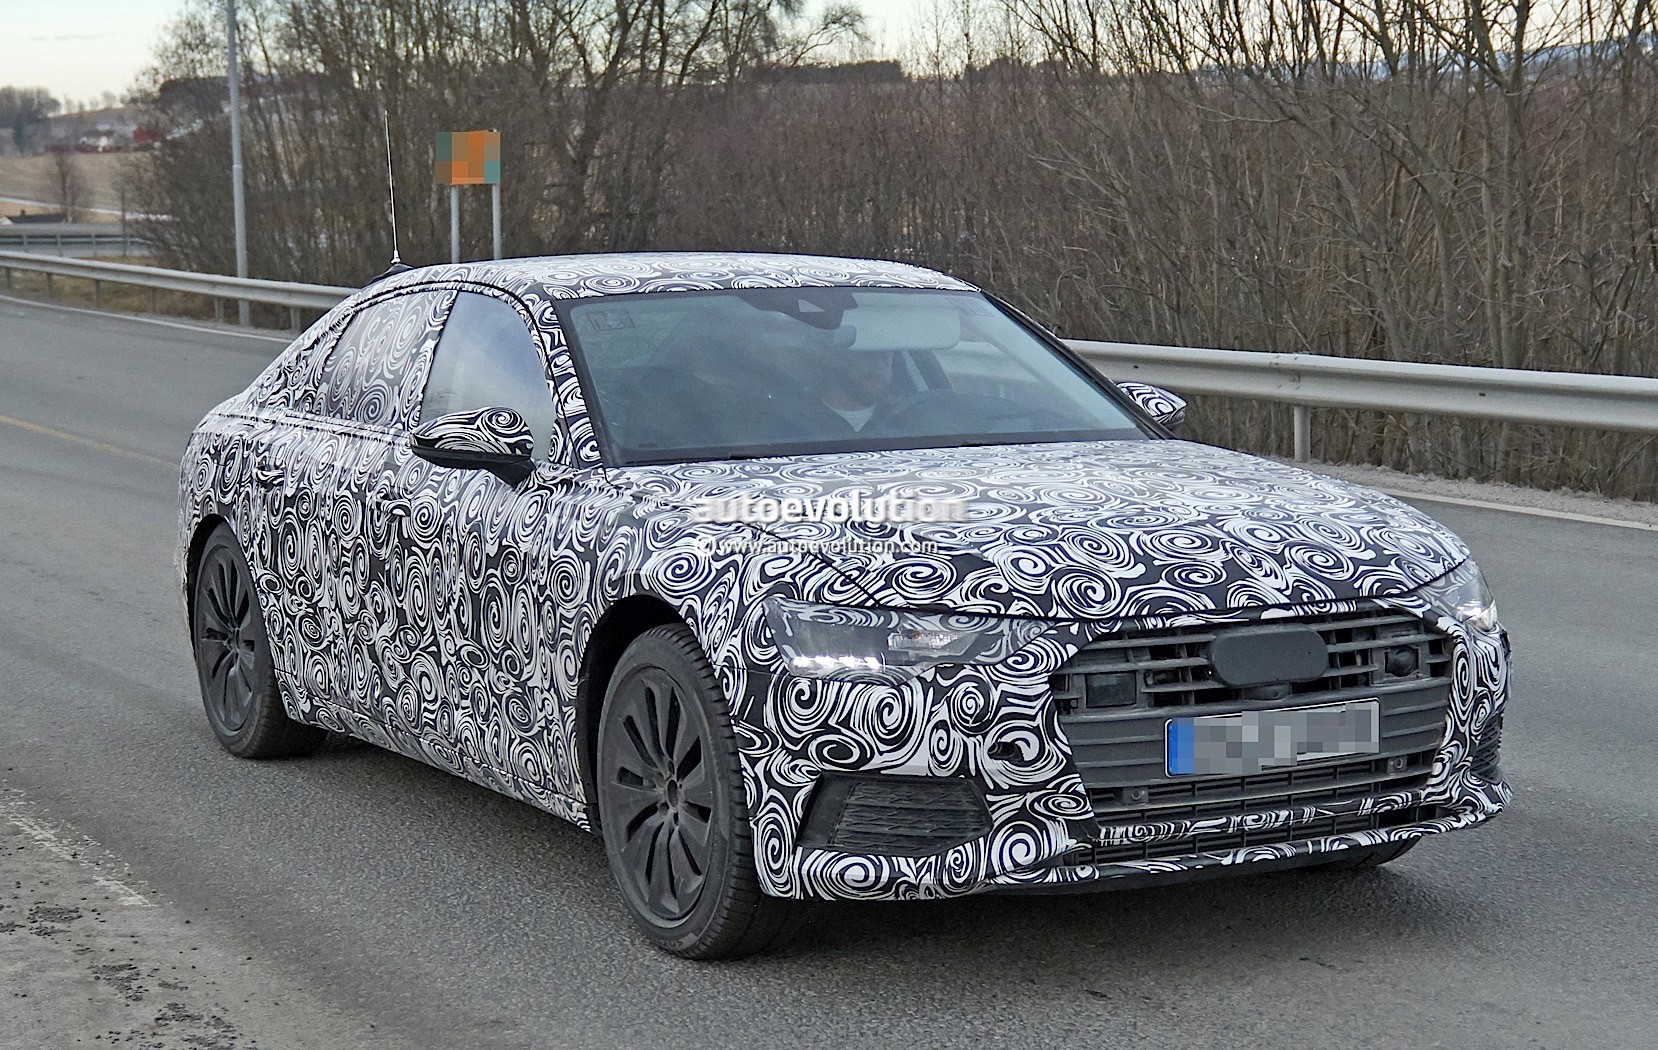 Audi Q7 2019 Facelift >> 2017 Audi A6 Confirmed by Marc Lichte, Will Ride on MLB Evo - autoevolution